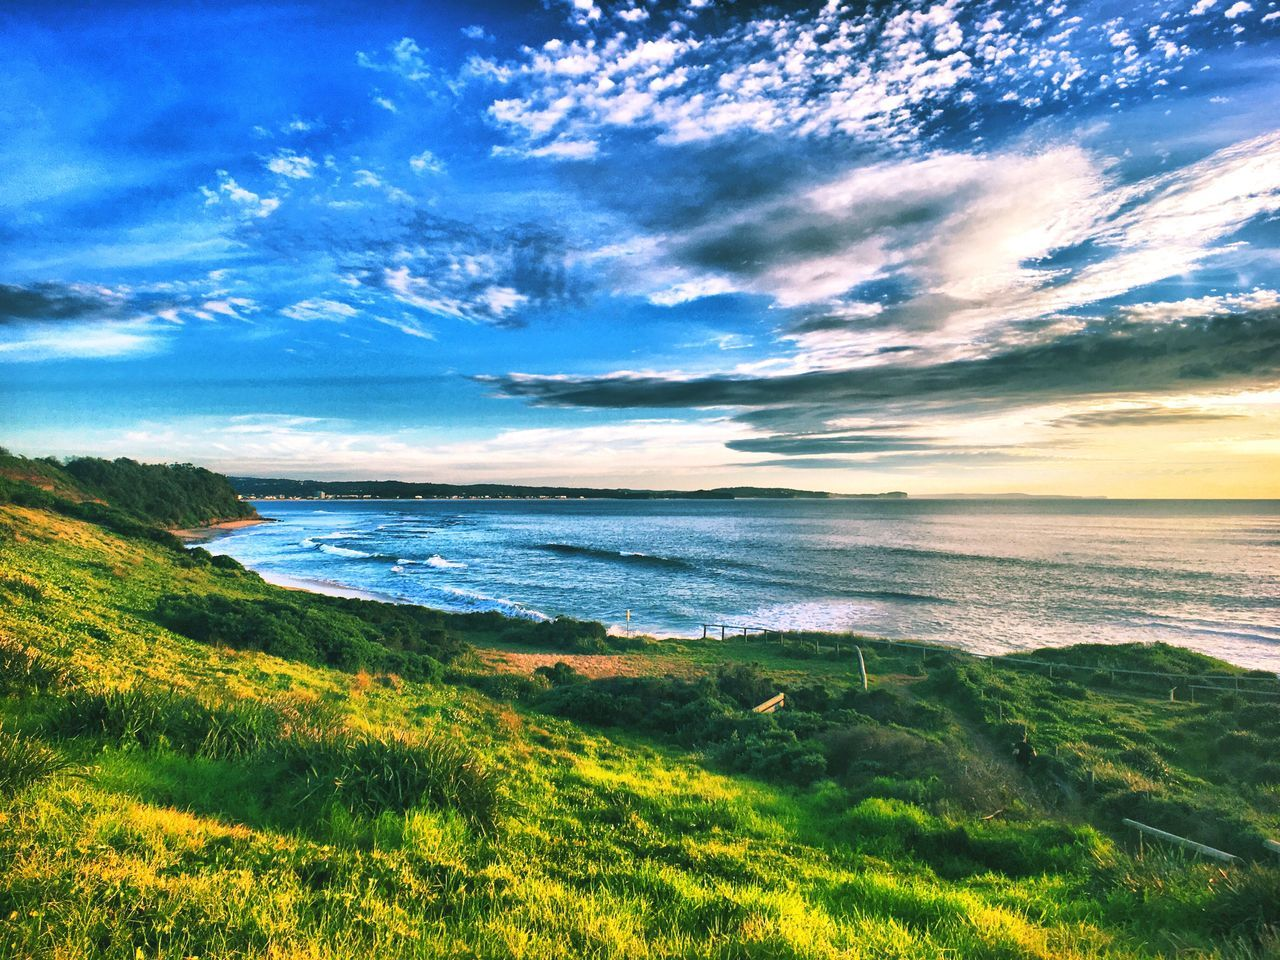 sea, nature, beauty in nature, scenics, tranquil scene, tranquility, horizon over water, sky, water, cloud - sky, no people, outdoors, grass, idyllic, landscape, beach, green color, day, wave